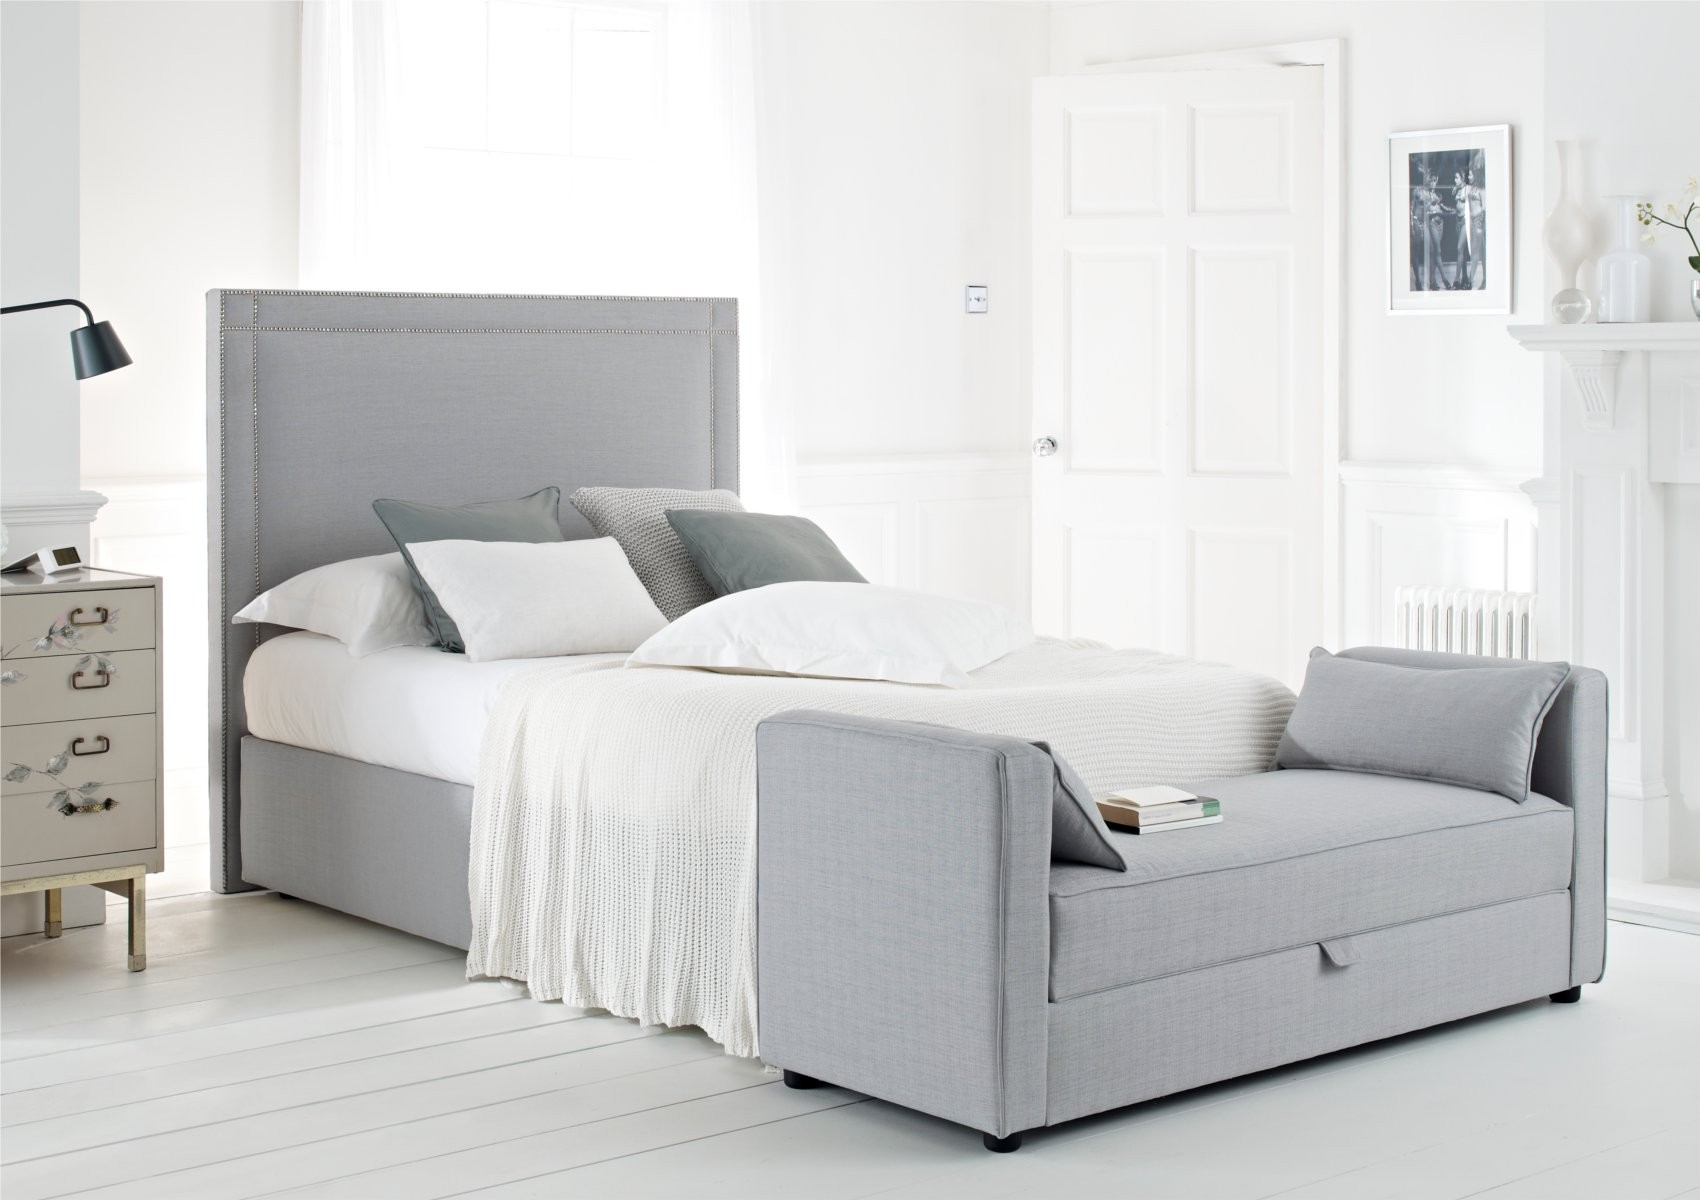 Grey Tall Upholstered Bed Frame White Bedding And Additional Bench